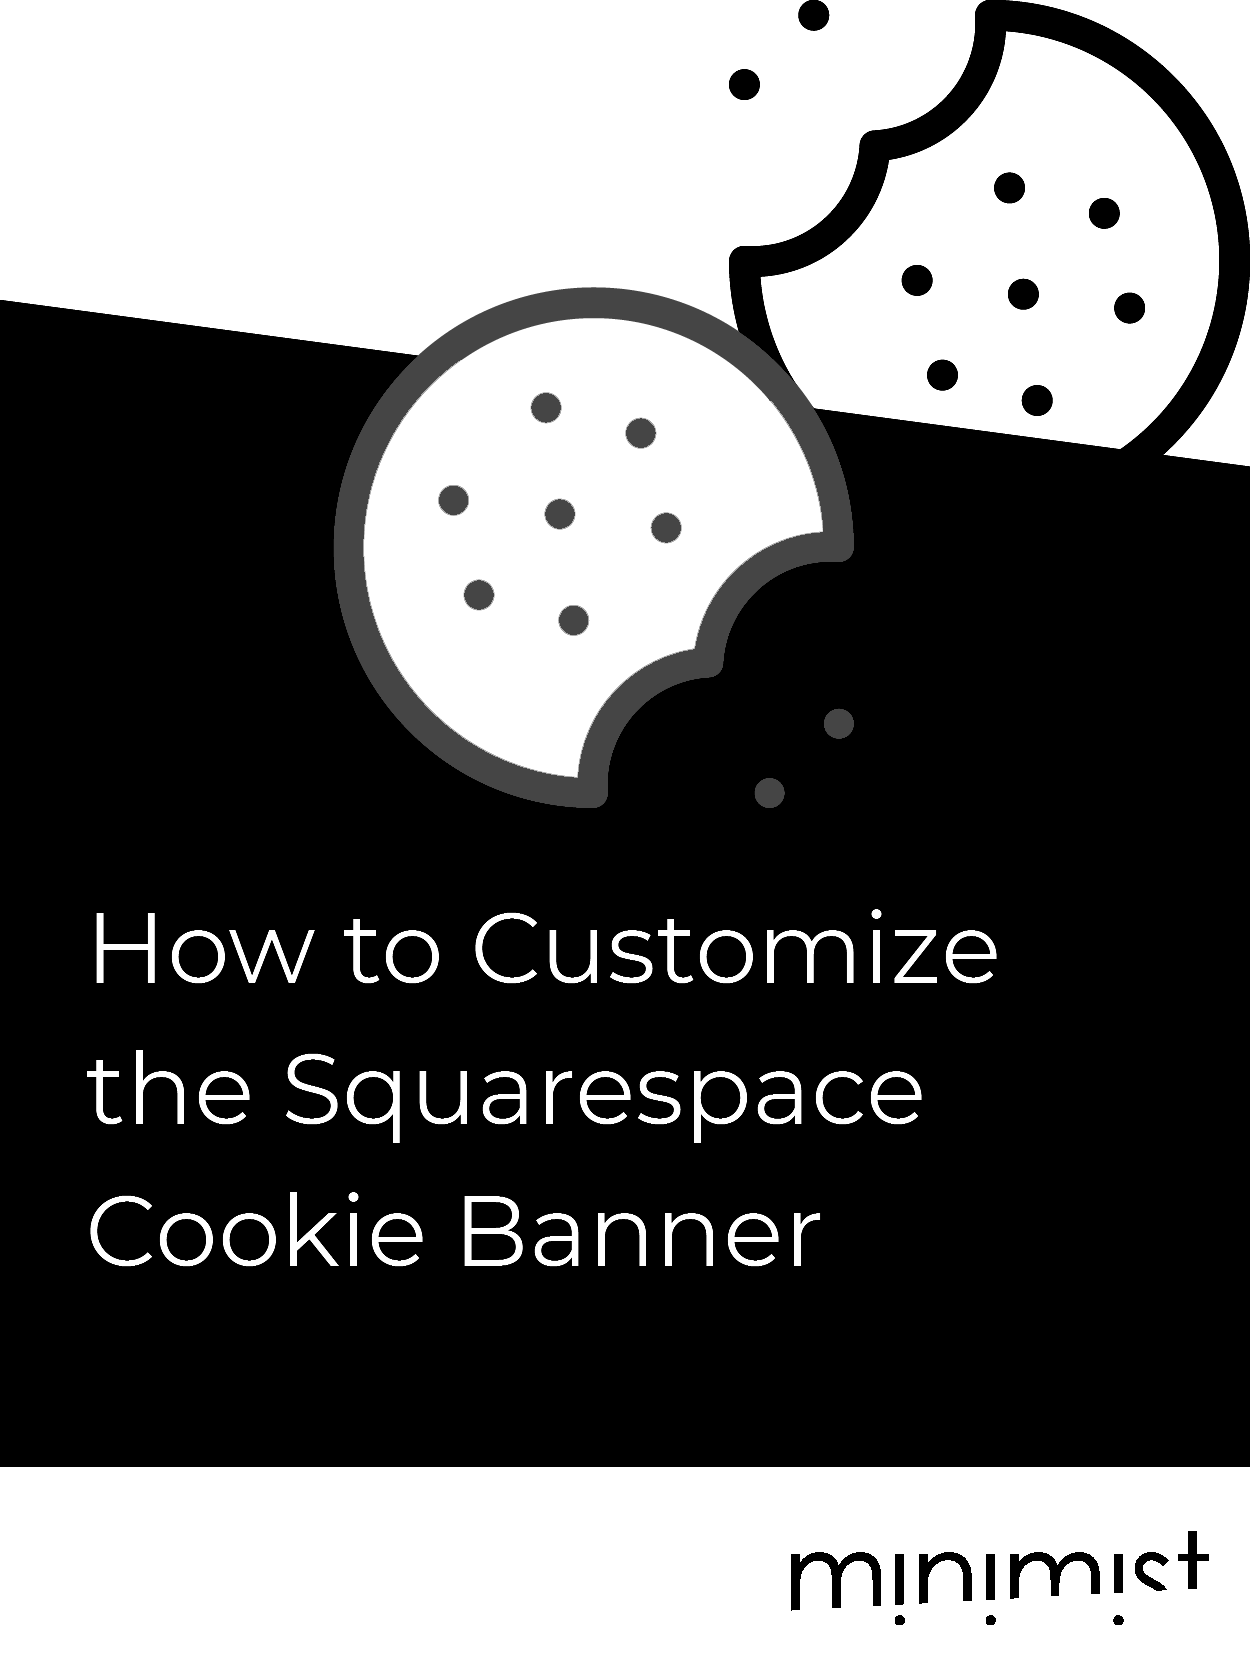 How to Customize the Squarespace Cookie Banner